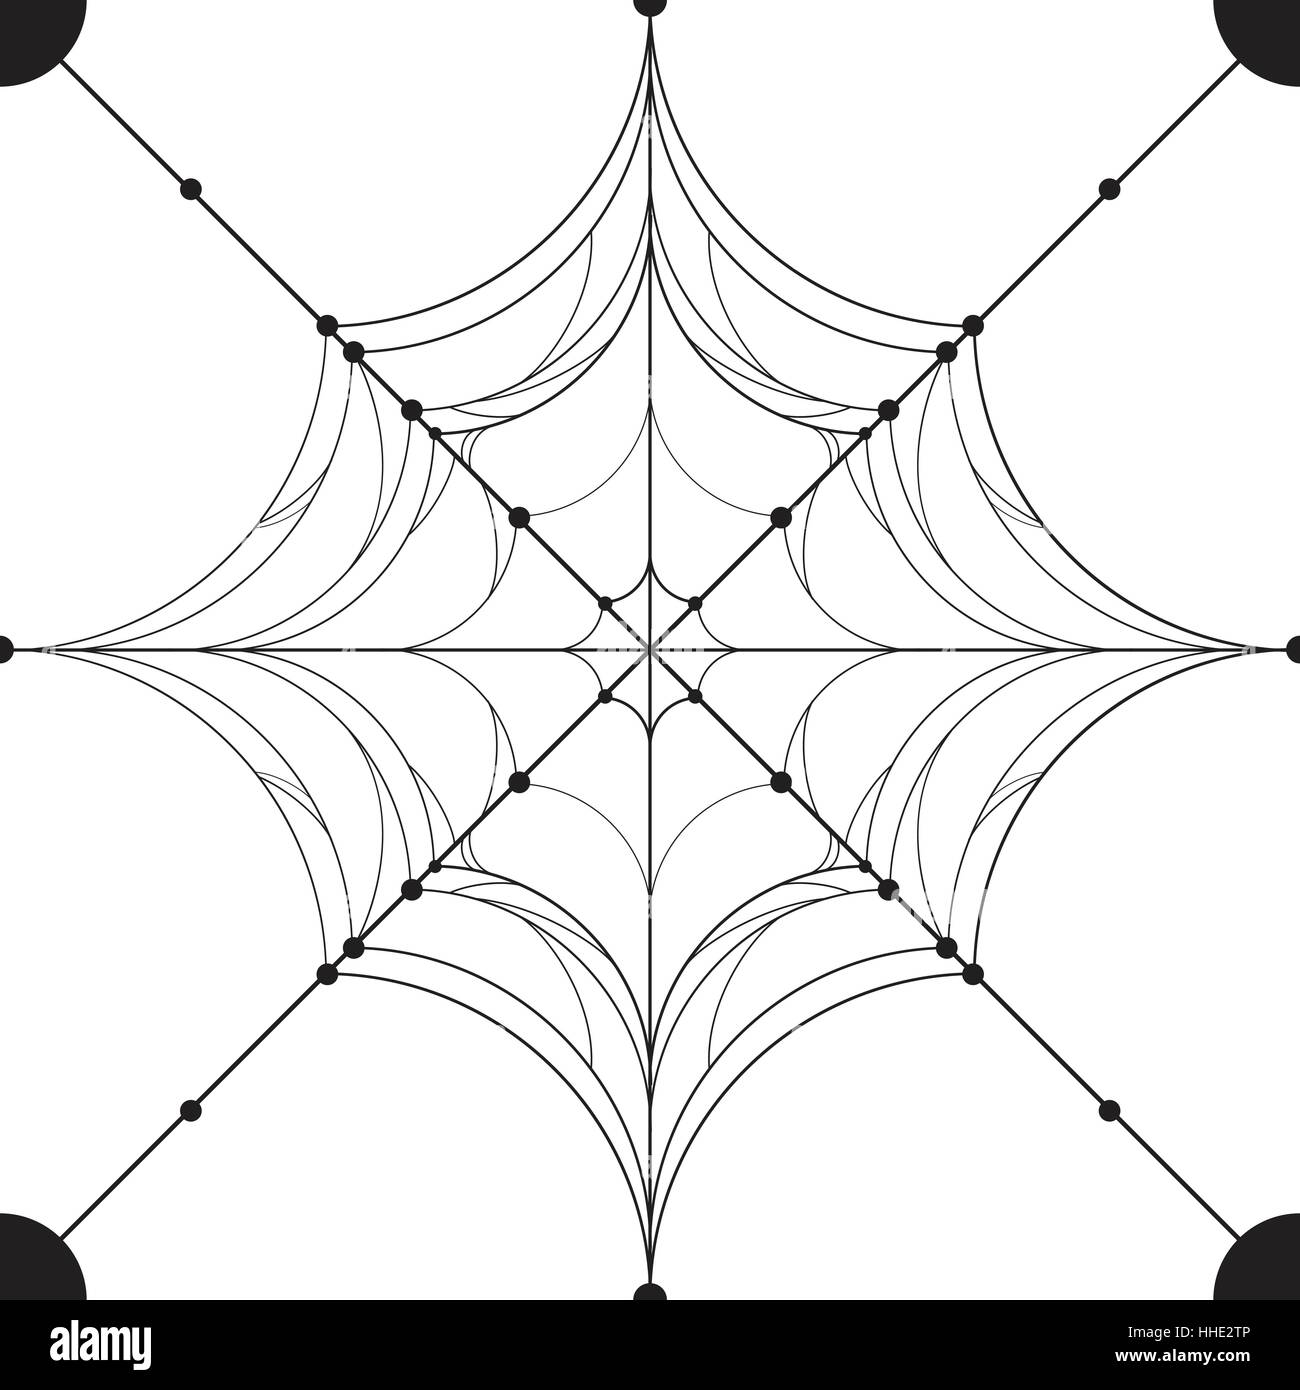 spirder web use for pattern and background isolated on white stock